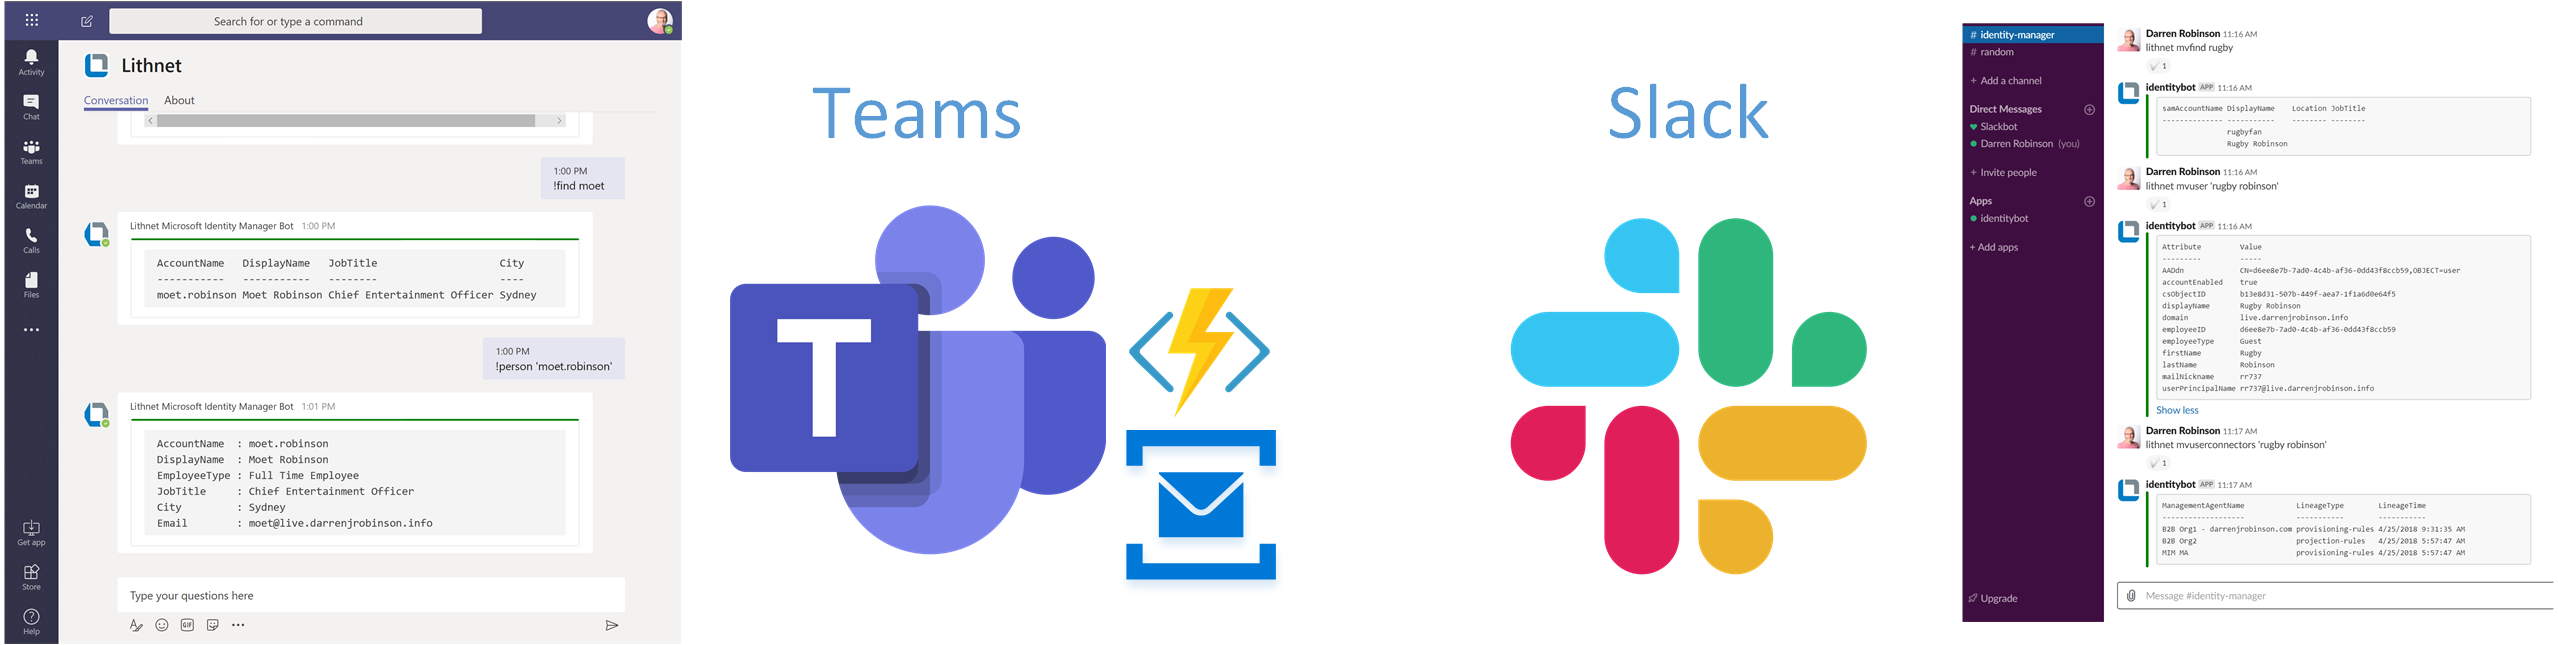 ChatOps for Microsoft Identity Manager Teams & Slack.png